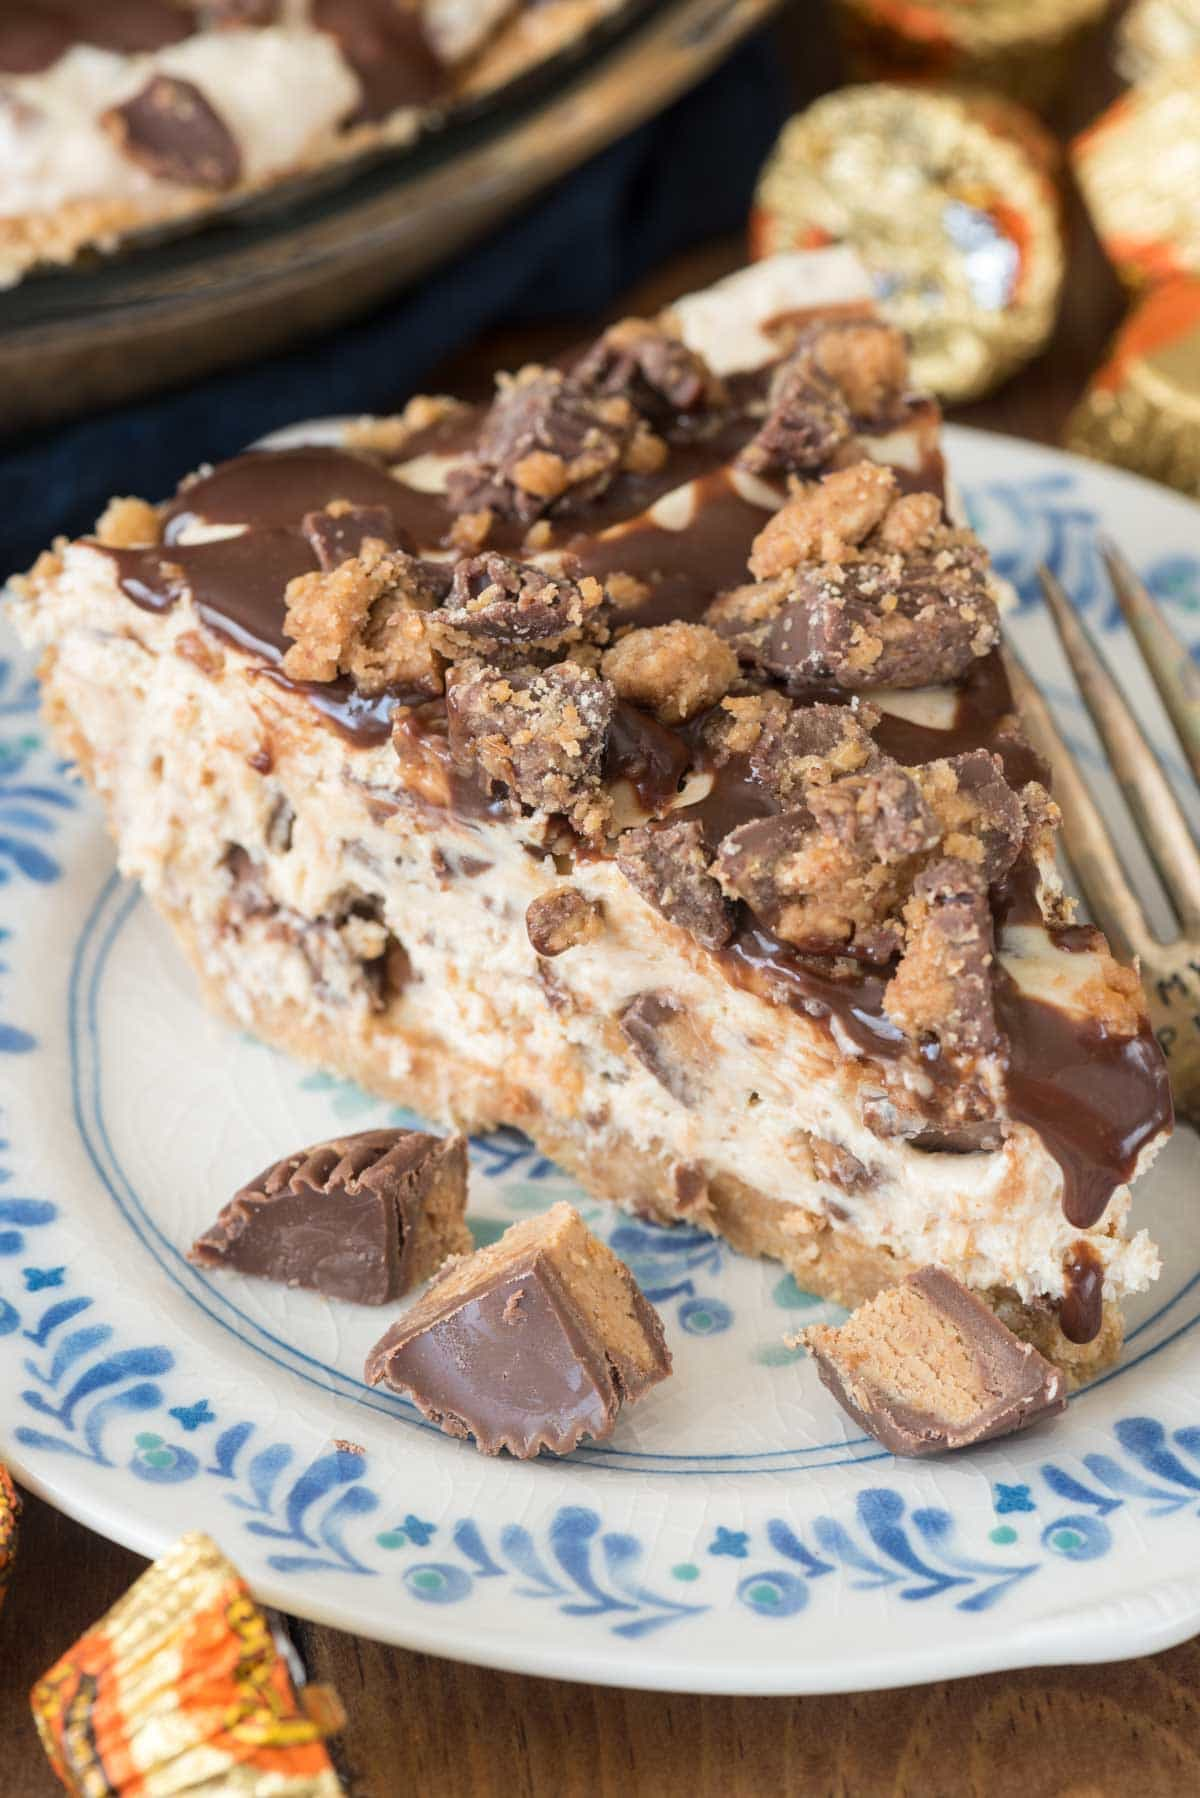 https://www.crazyforcrust.com/no-bake-peanut-butter-cup-pie/